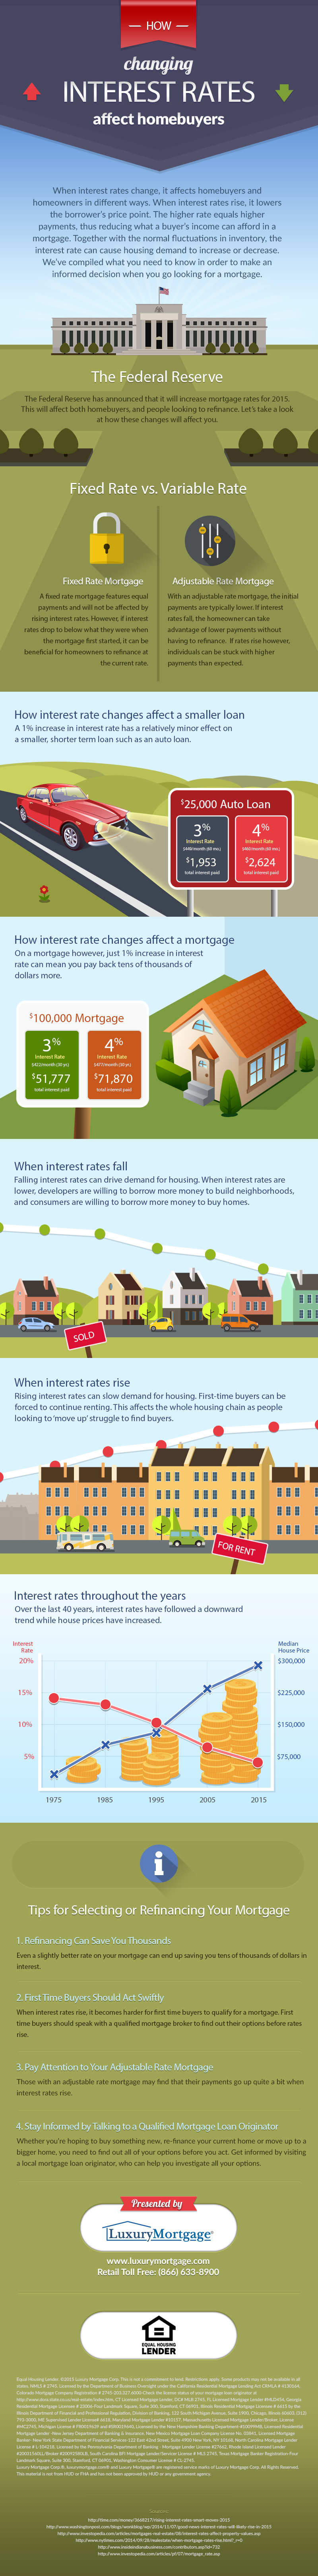 How Changing Interest Rates Affect Homebuyers